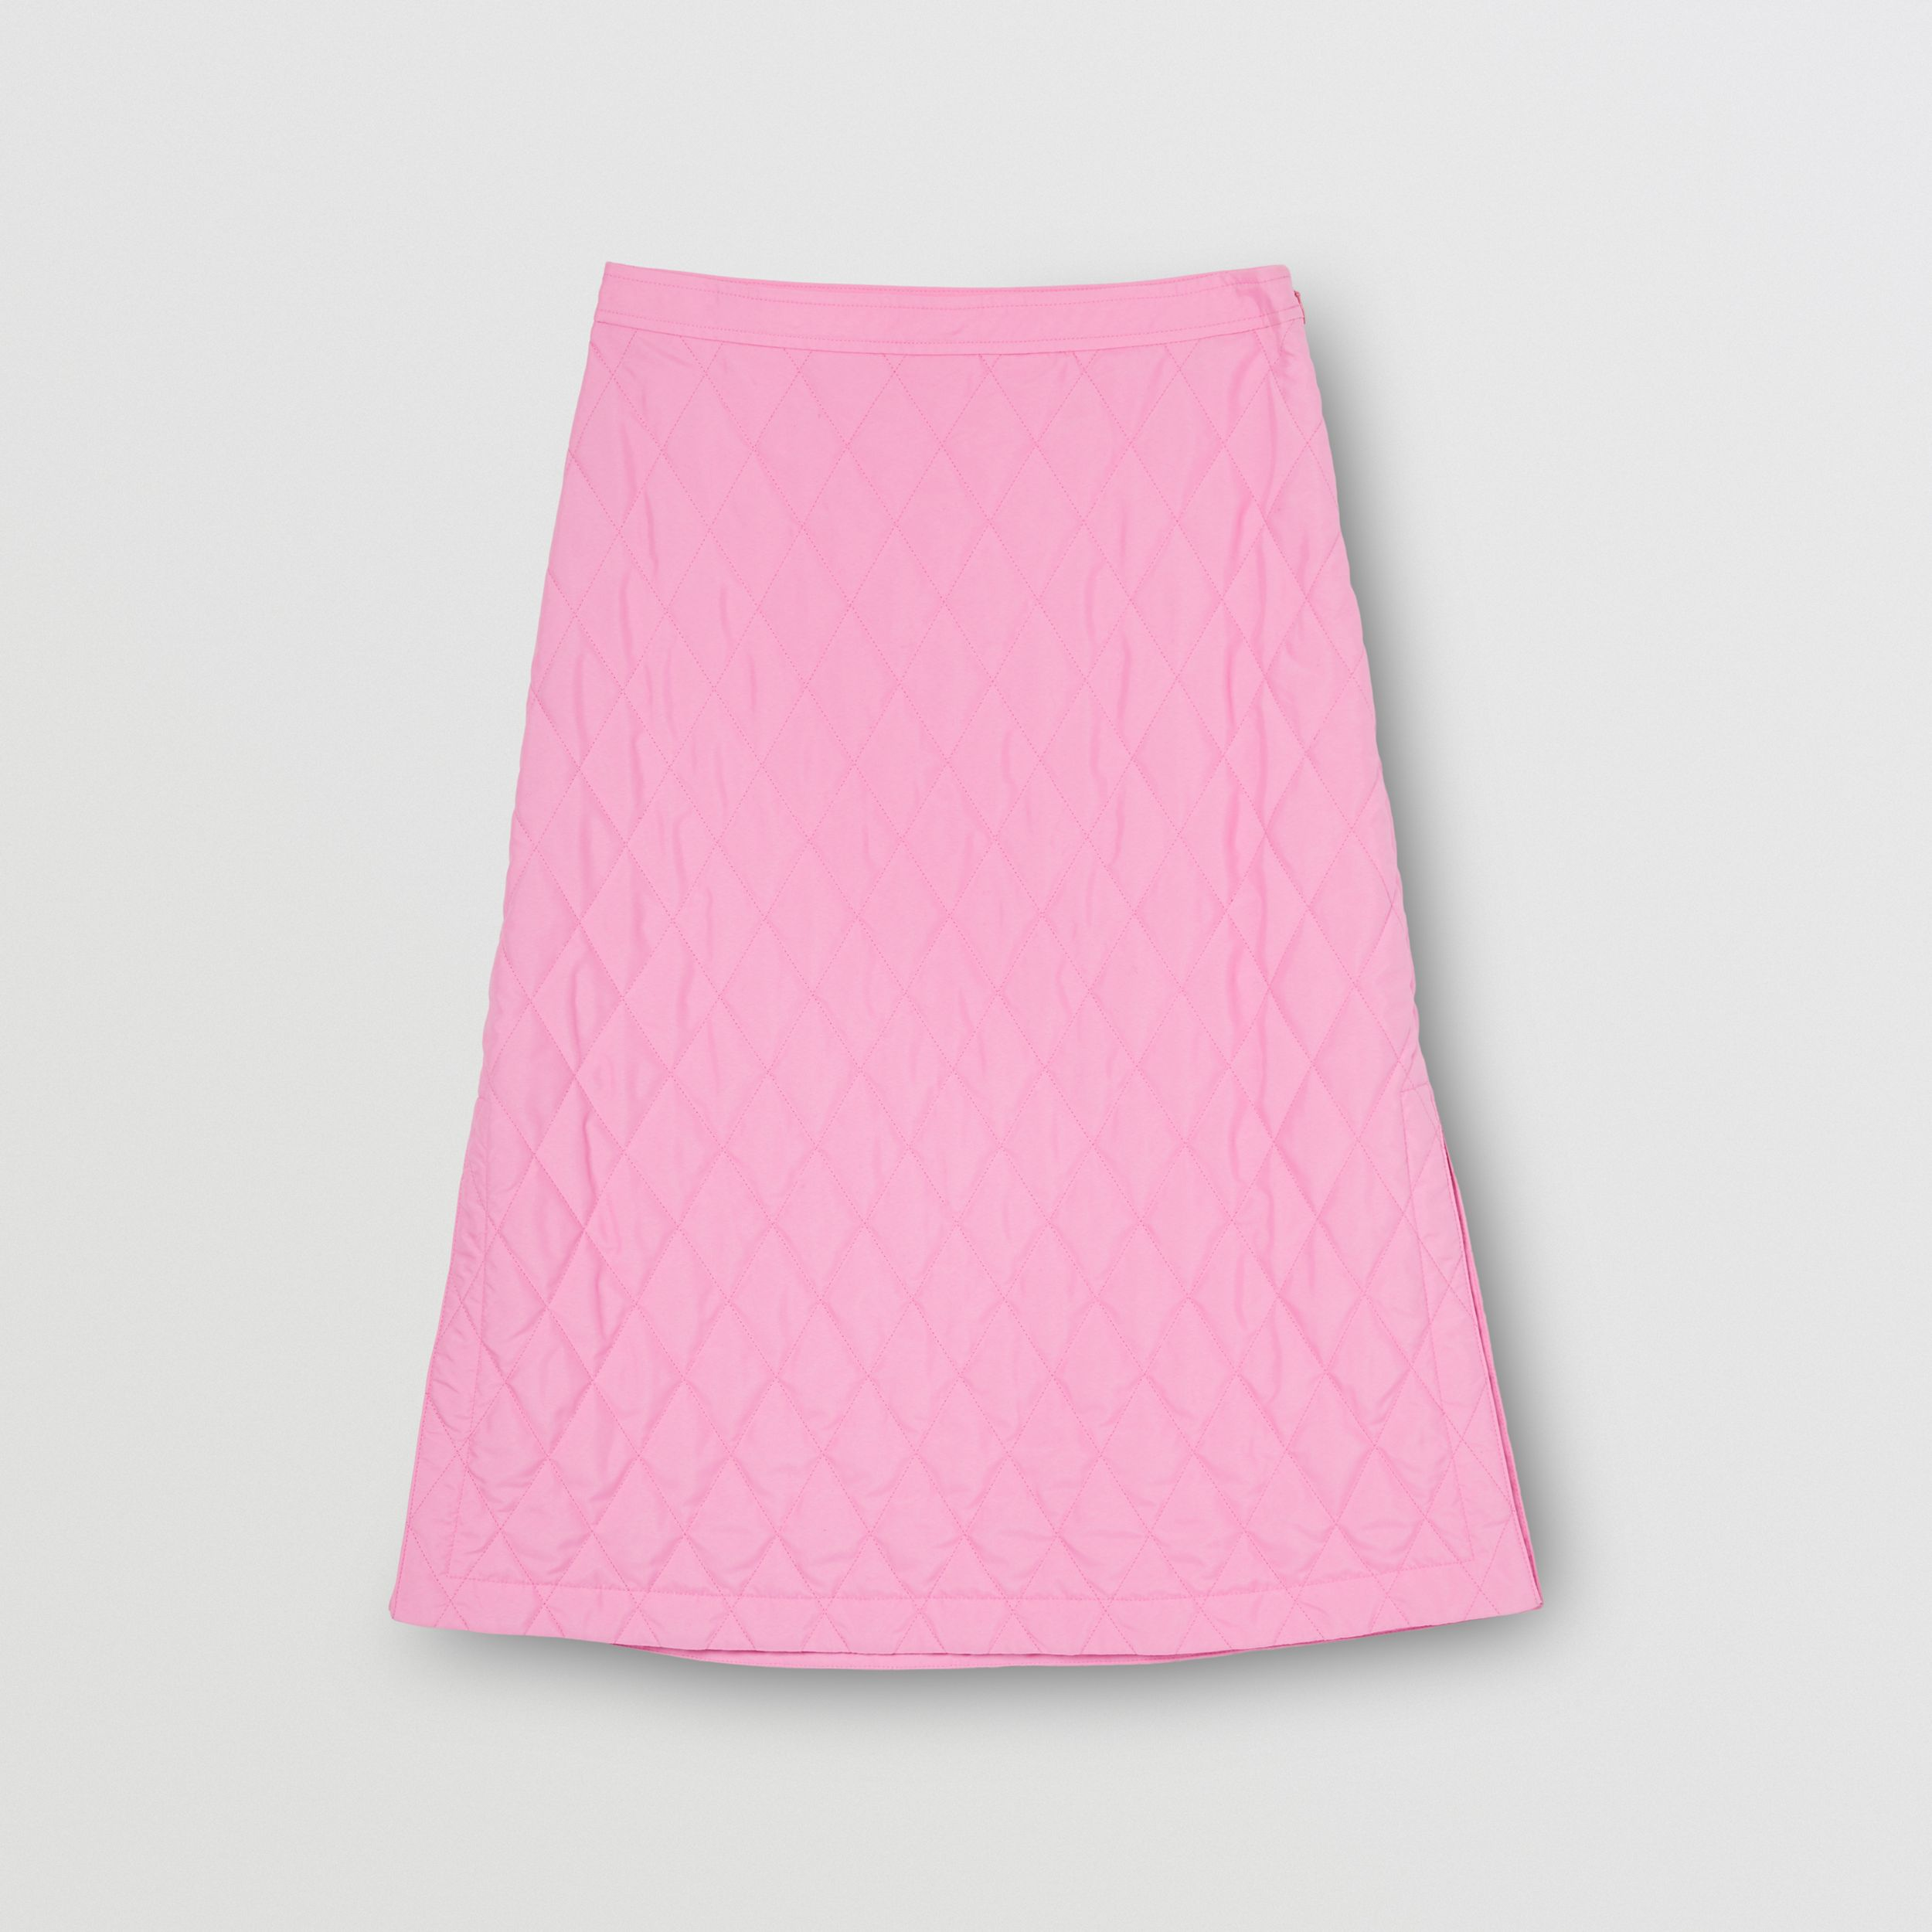 Diamond Quilted Skirt in Bubblegum Pink - Women | Burberry - 4